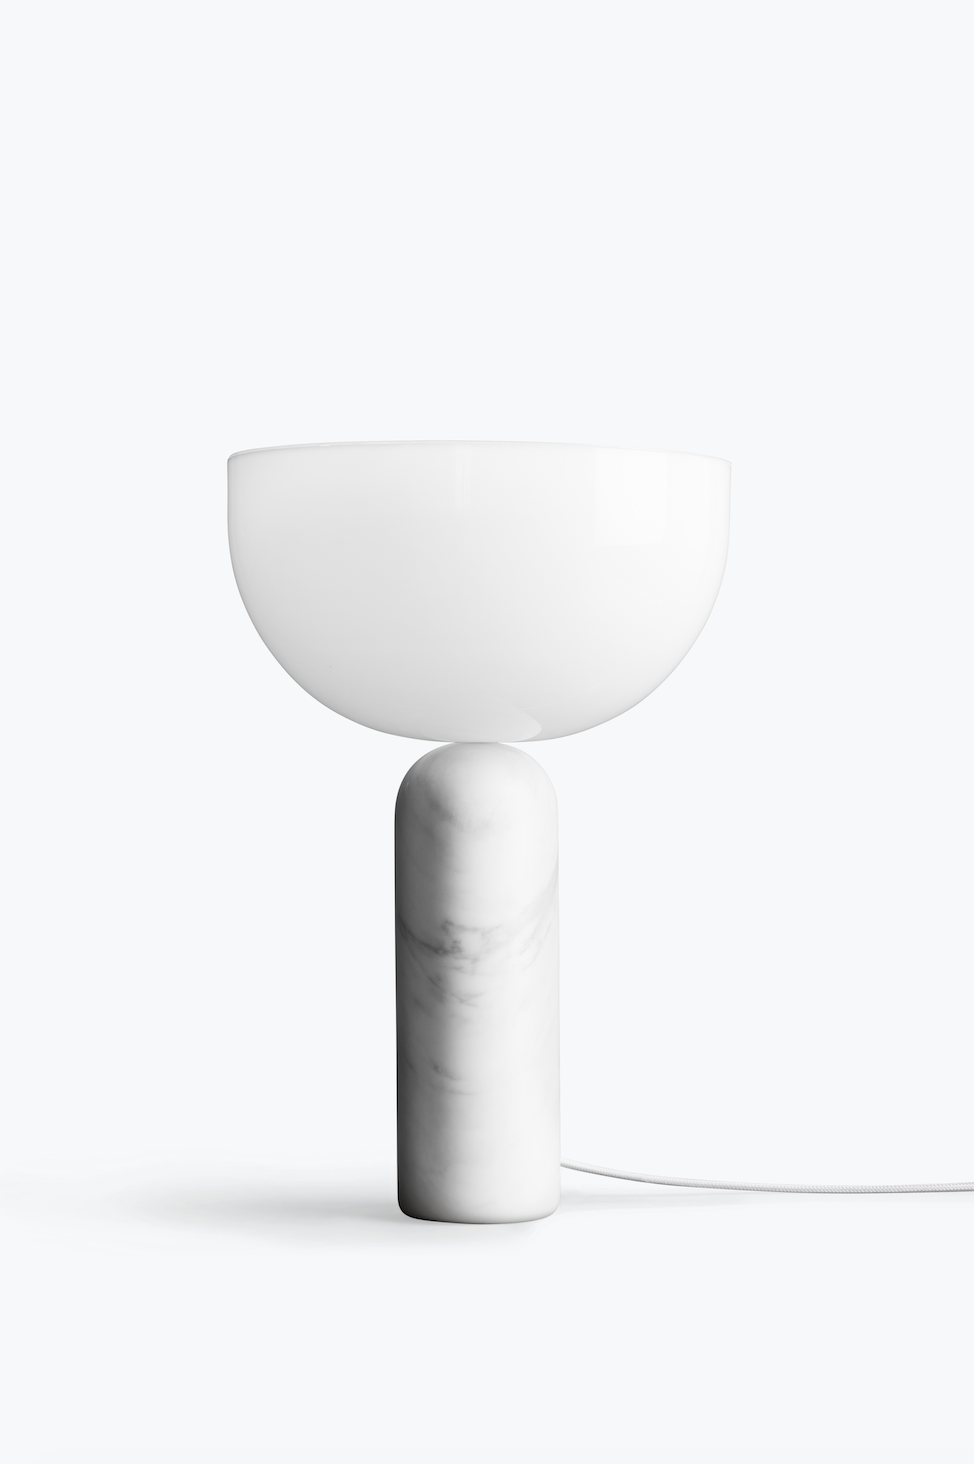 Kizu Table Lamp by New Works, £349 - Clippings